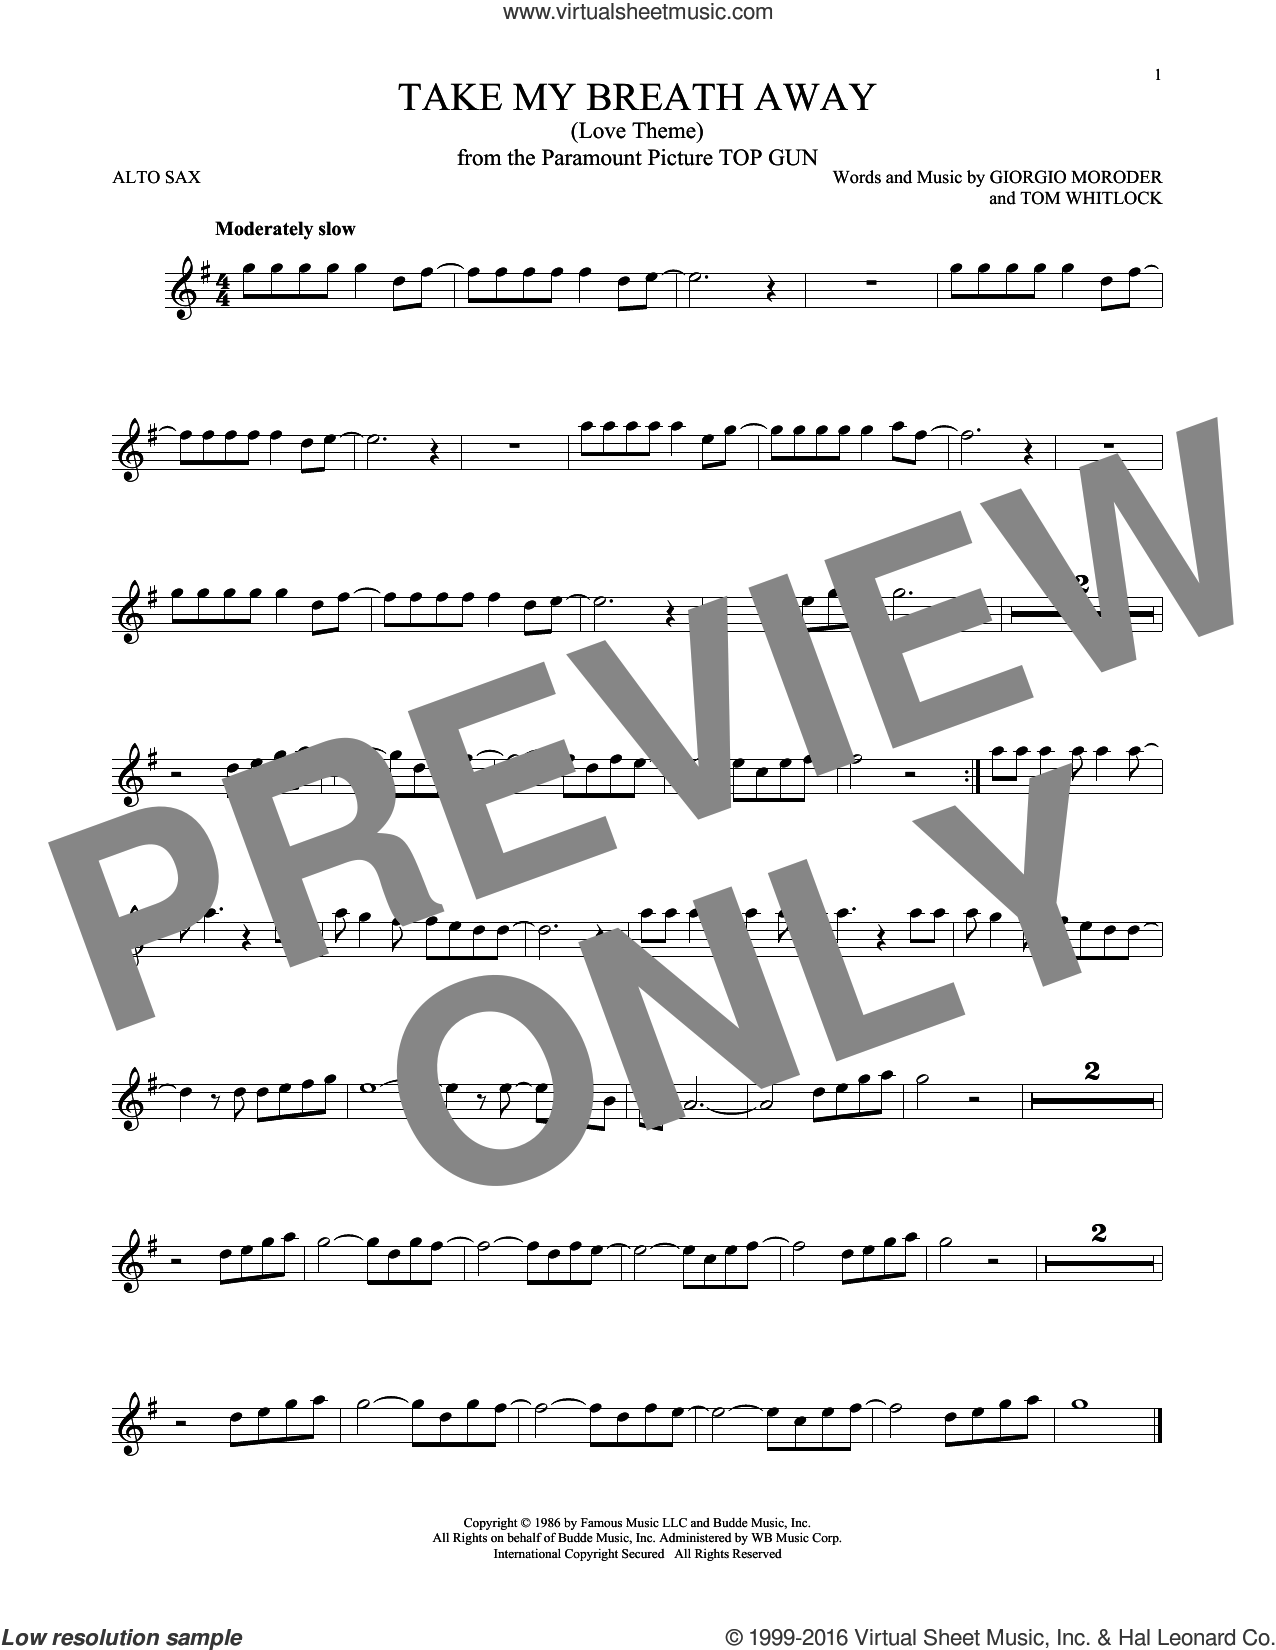 Take My Breath Away (Love Theme) sheet music for alto saxophone solo by Giorgio Moroder, Irving Berlin, Jessica Simpson and Tom Whitlock, intermediate skill level